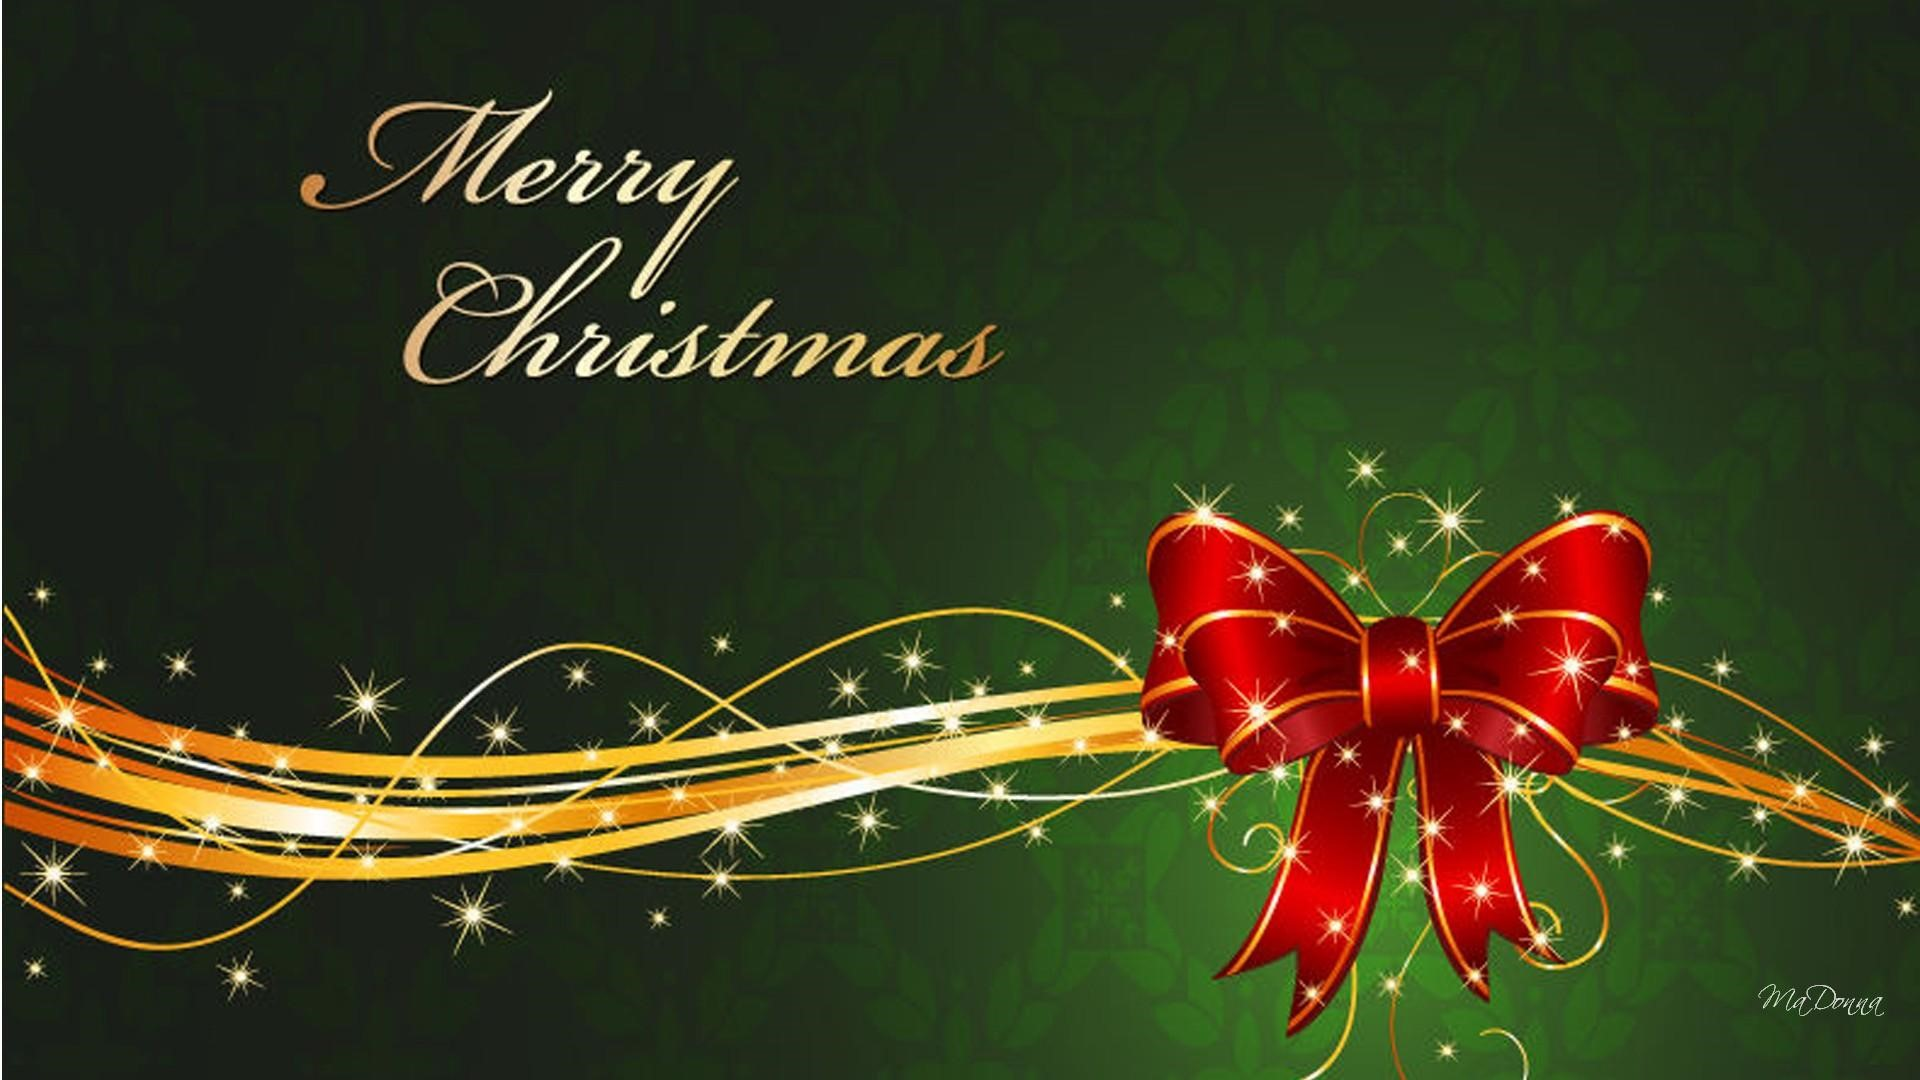 t vector merry christmas high quality wallpaper hd wallpapers